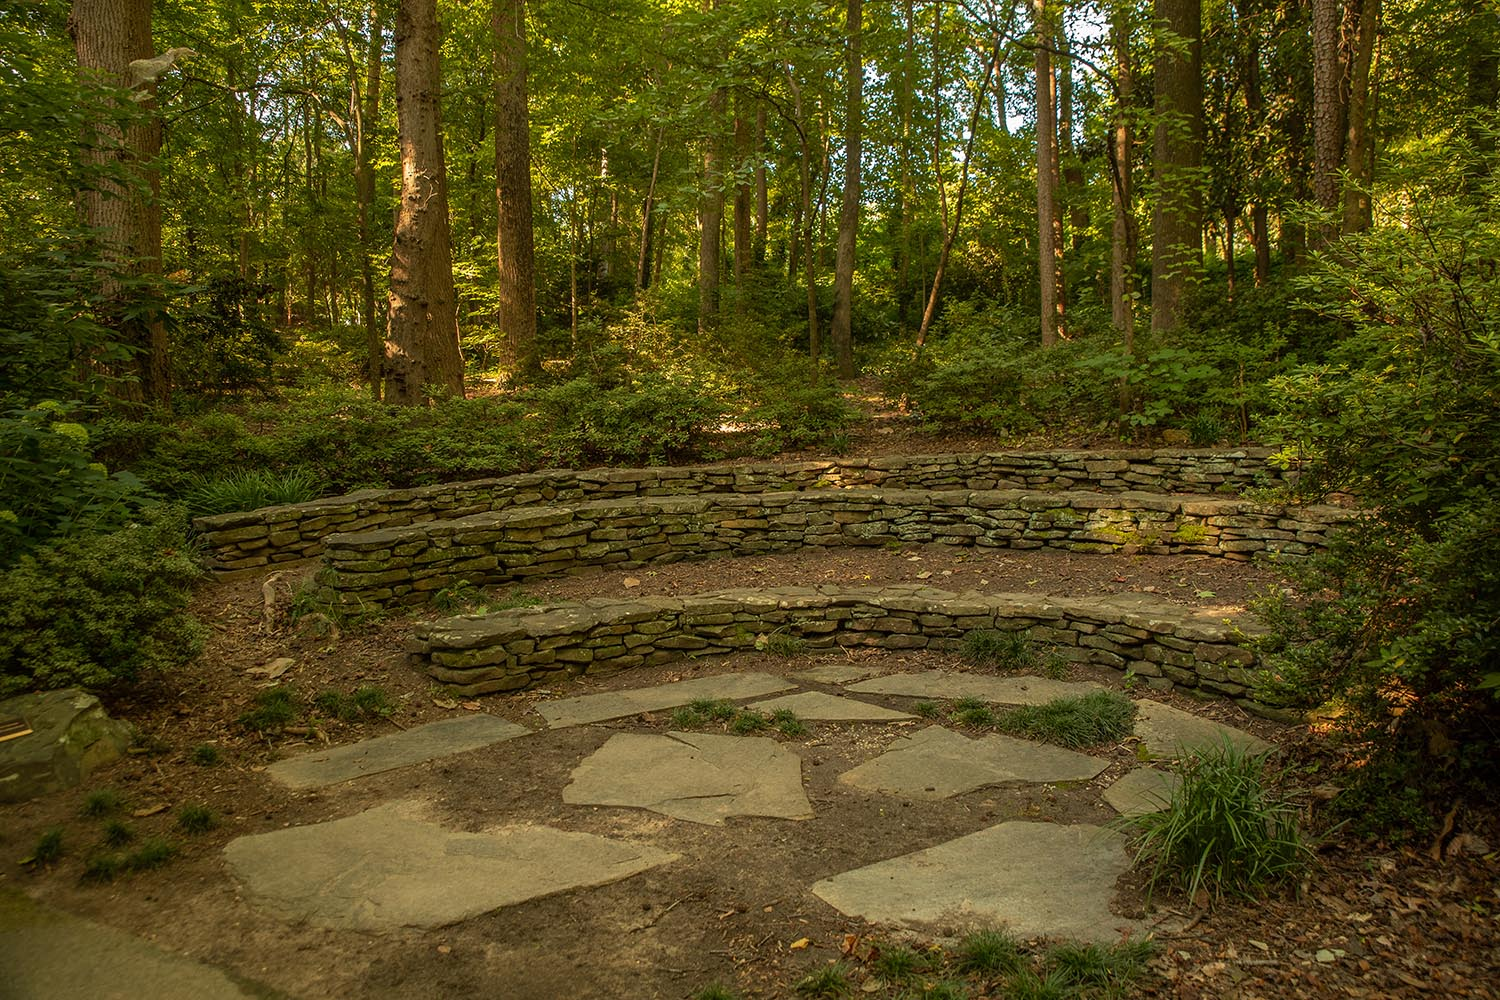 John A. Nevison Amphitheater - Surrounded by azaleas and river birches near the creek that feeds into the lower pond.